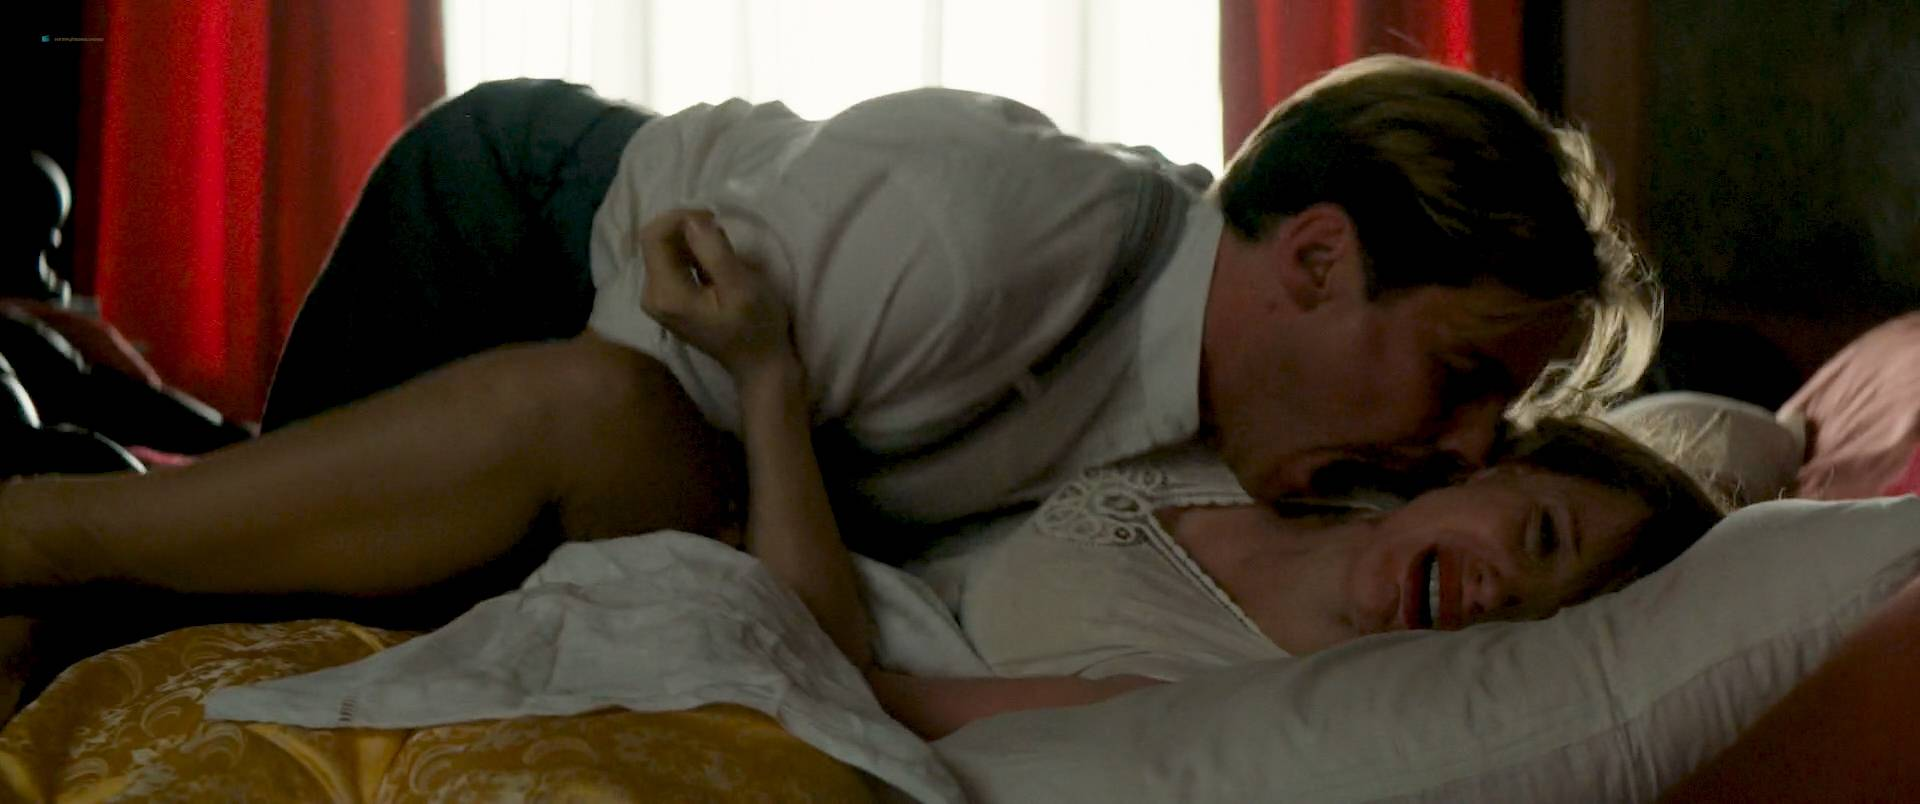 Jessica chastain the zookeepers wife nude naked (61 photo)